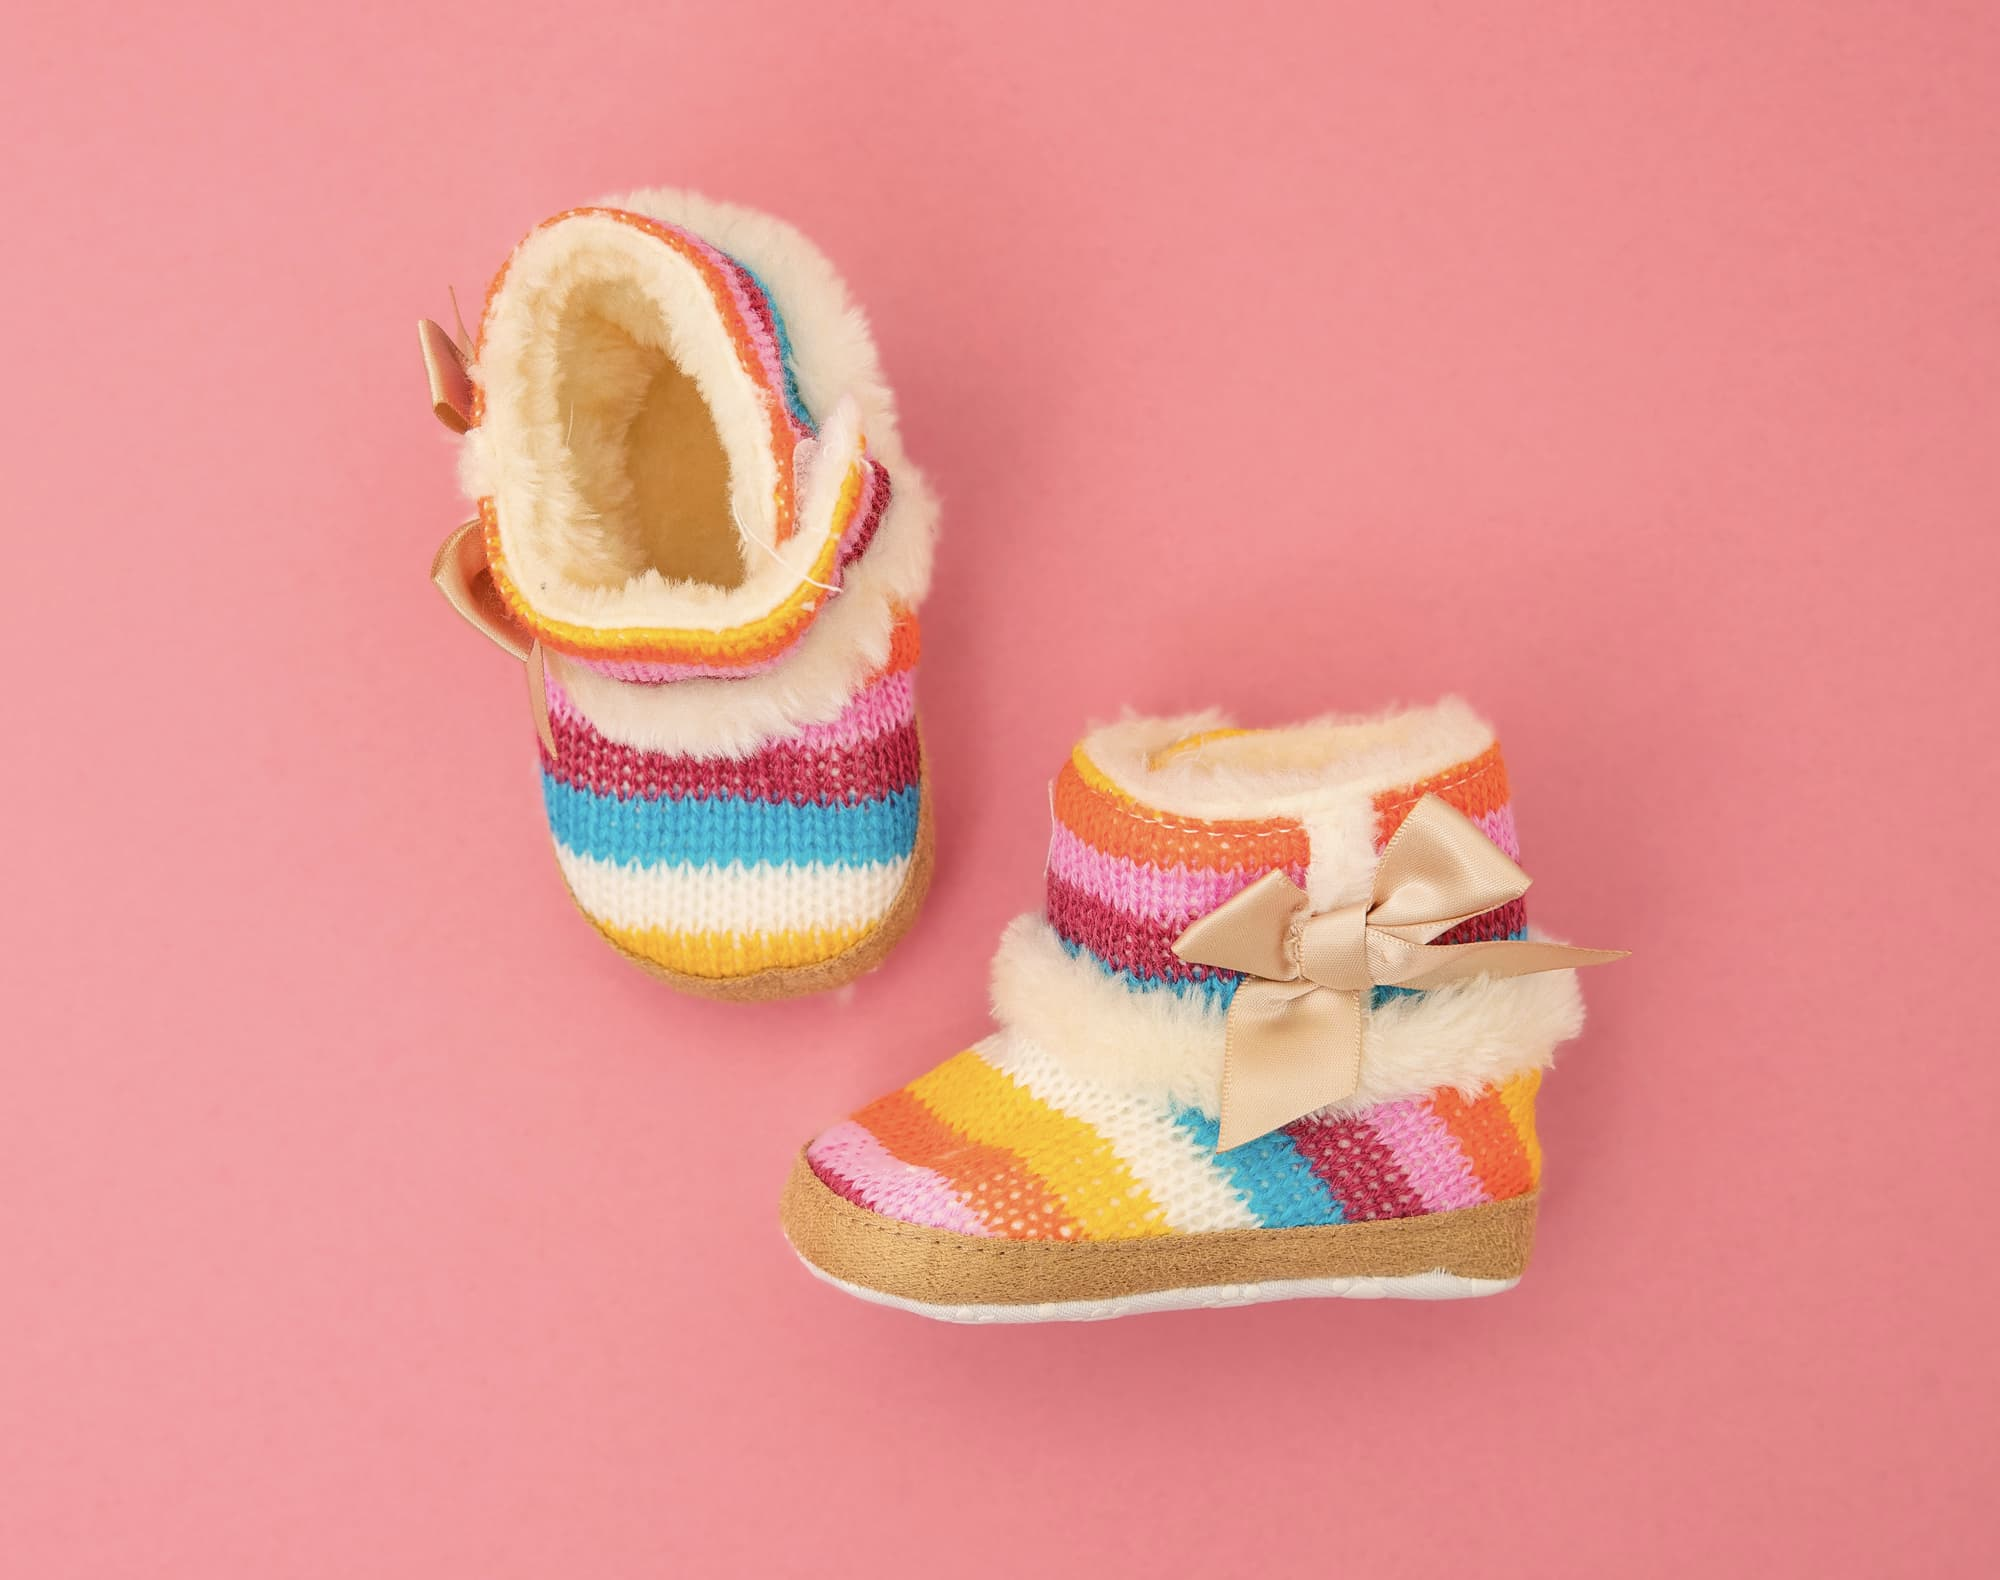 colorful baby shoes on pink background